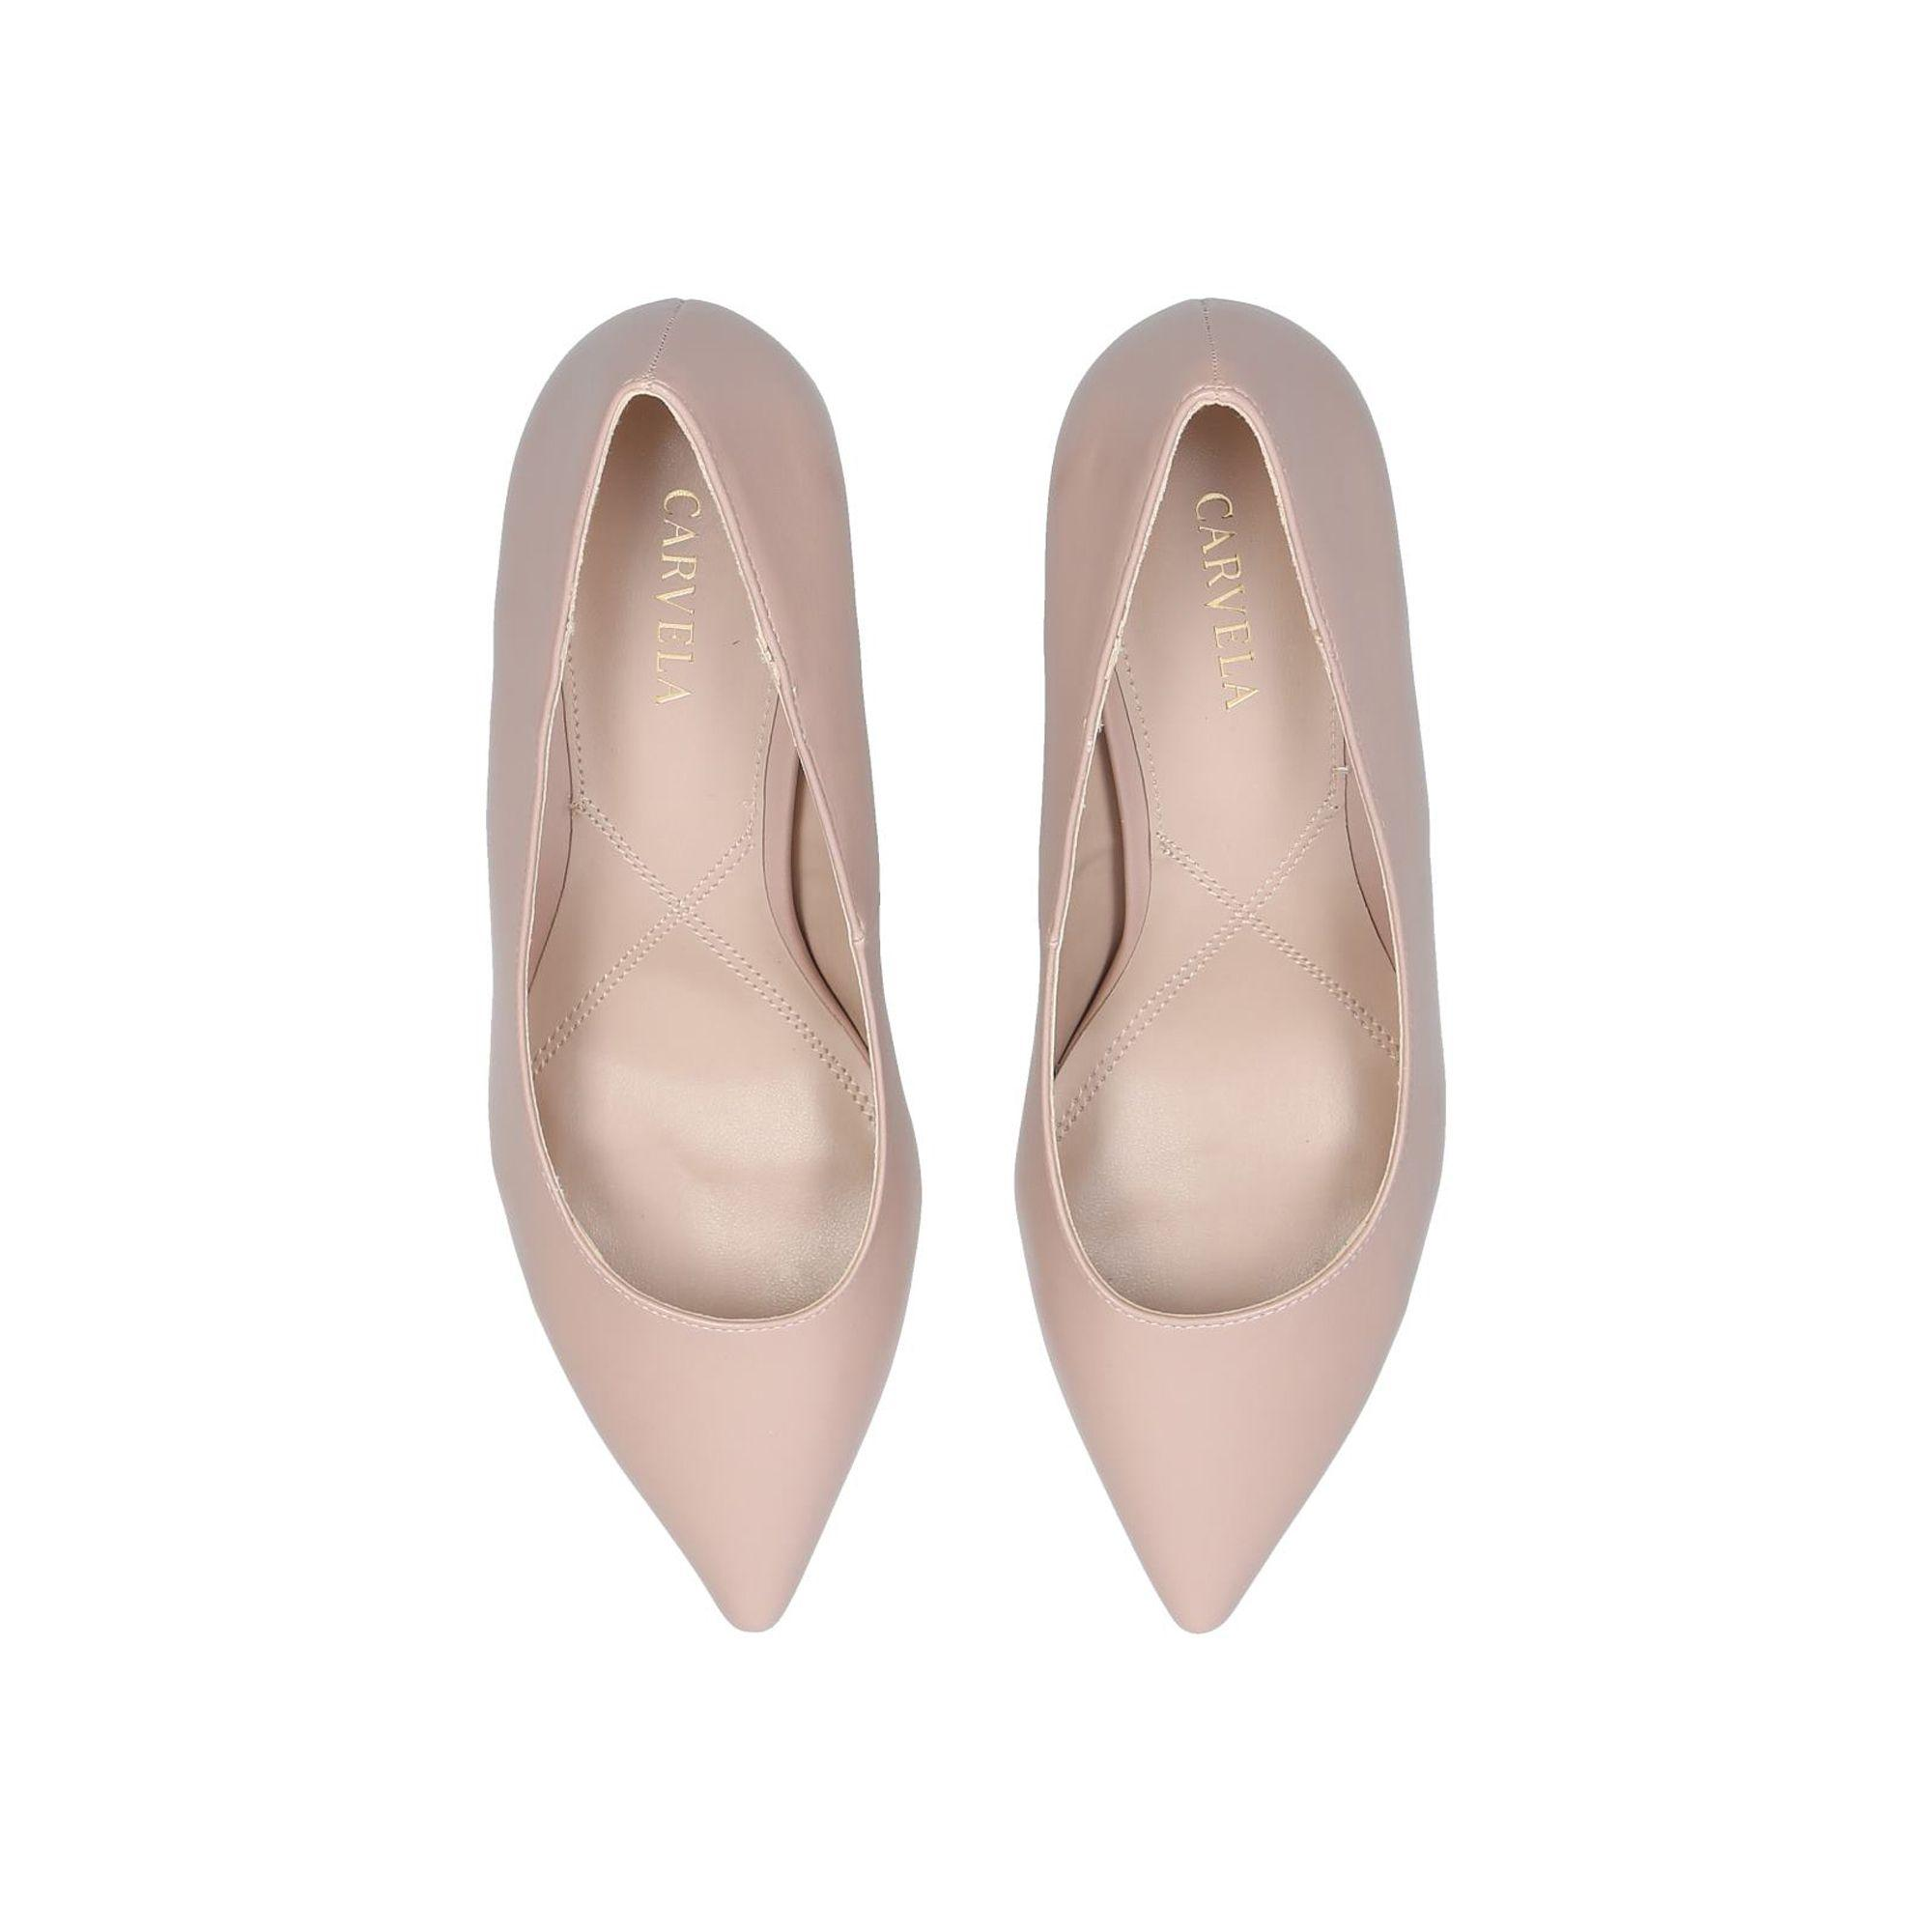 968d501560d Carvela Kurt Geiger - Natural Nude  kareful  Court Shoes - Lyst. View  fullscreen